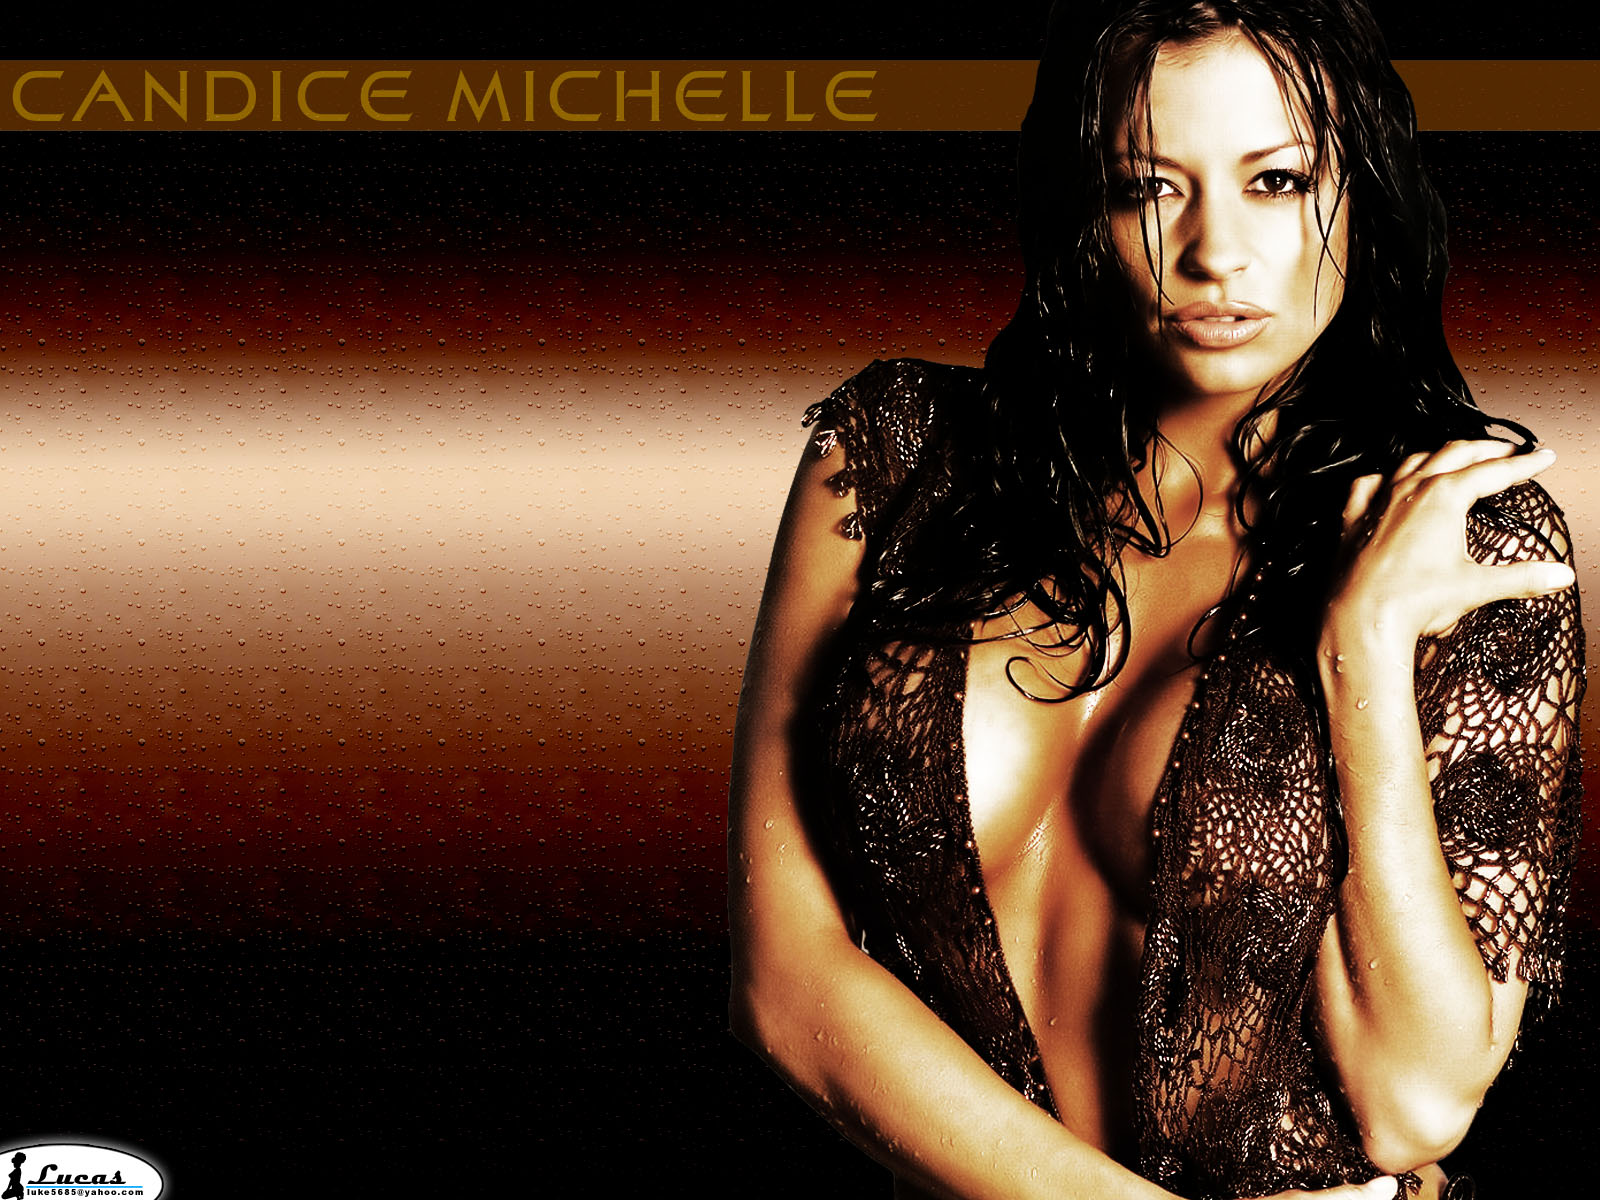 Candice michelle hot wwe